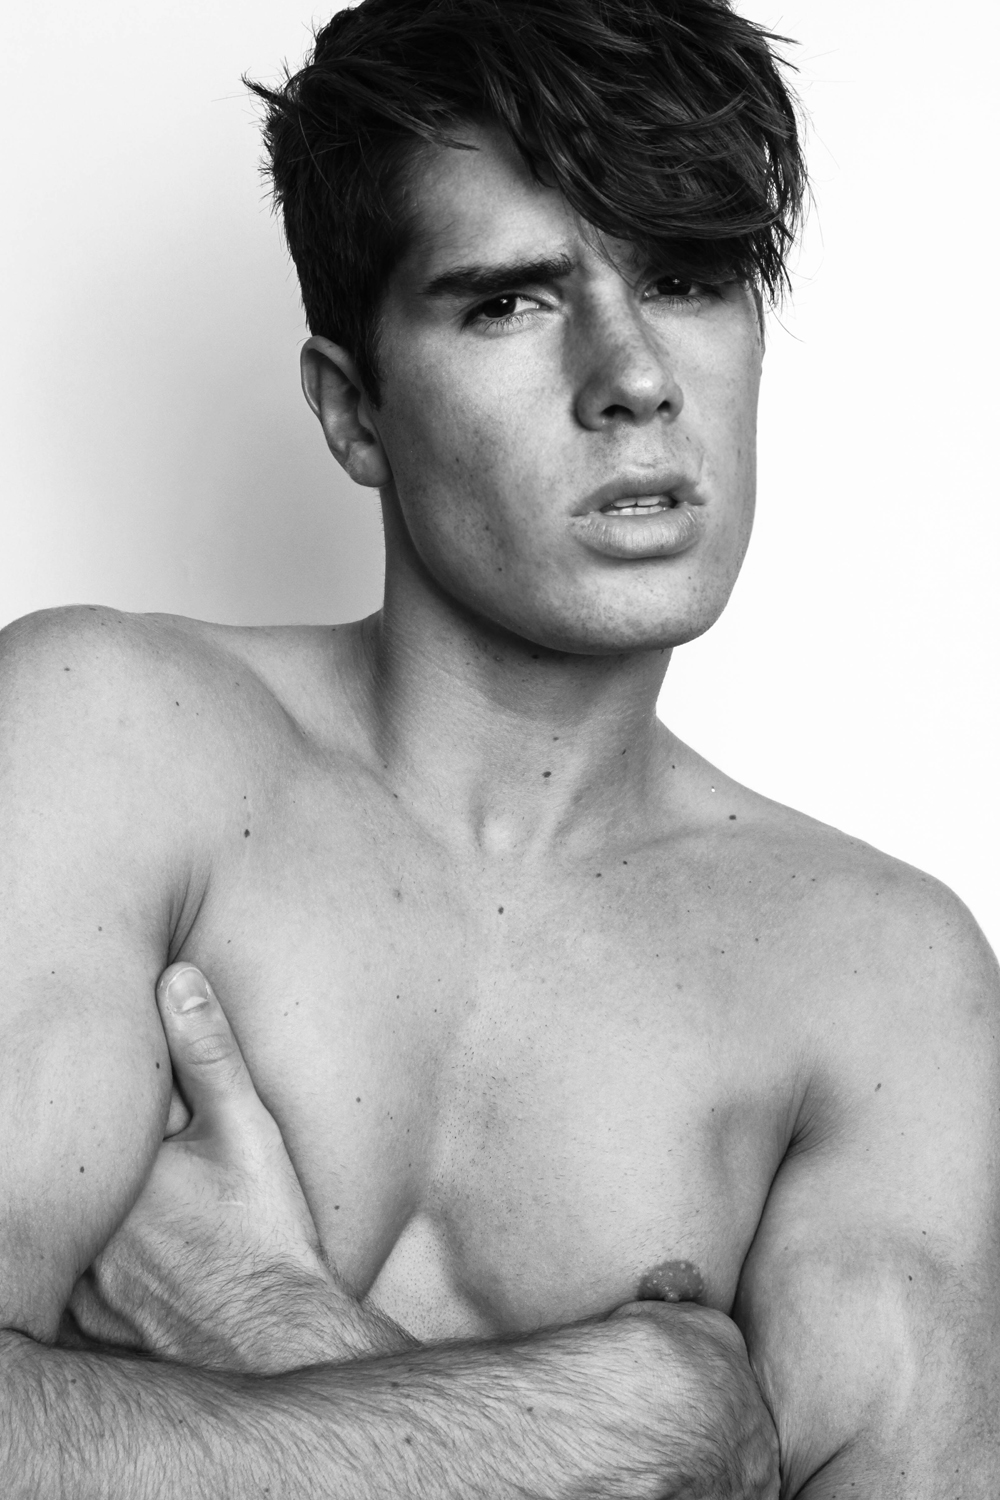 Judd Gross By Malcolm Bacani PnV Network2